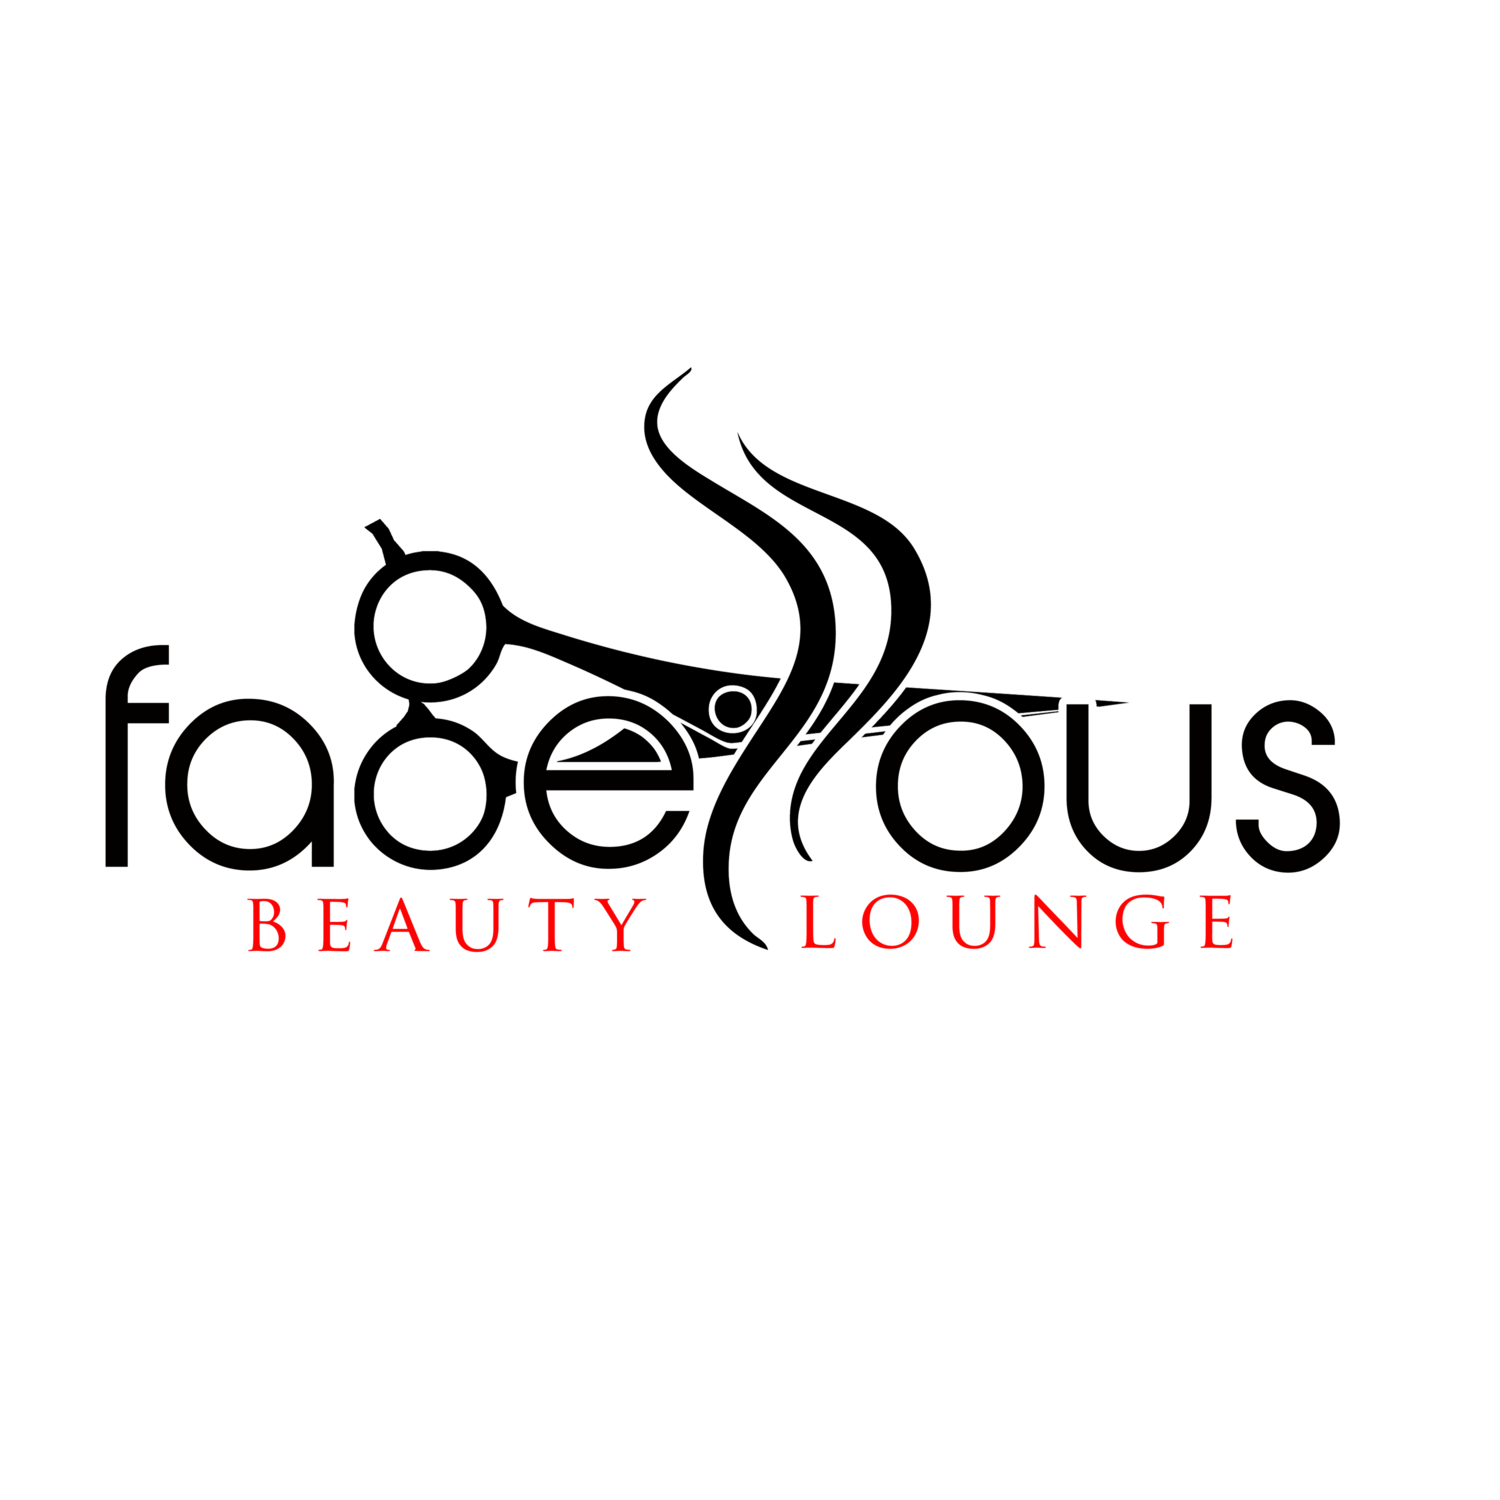 Scheduling Policy — Fabellous Beauty Lounge